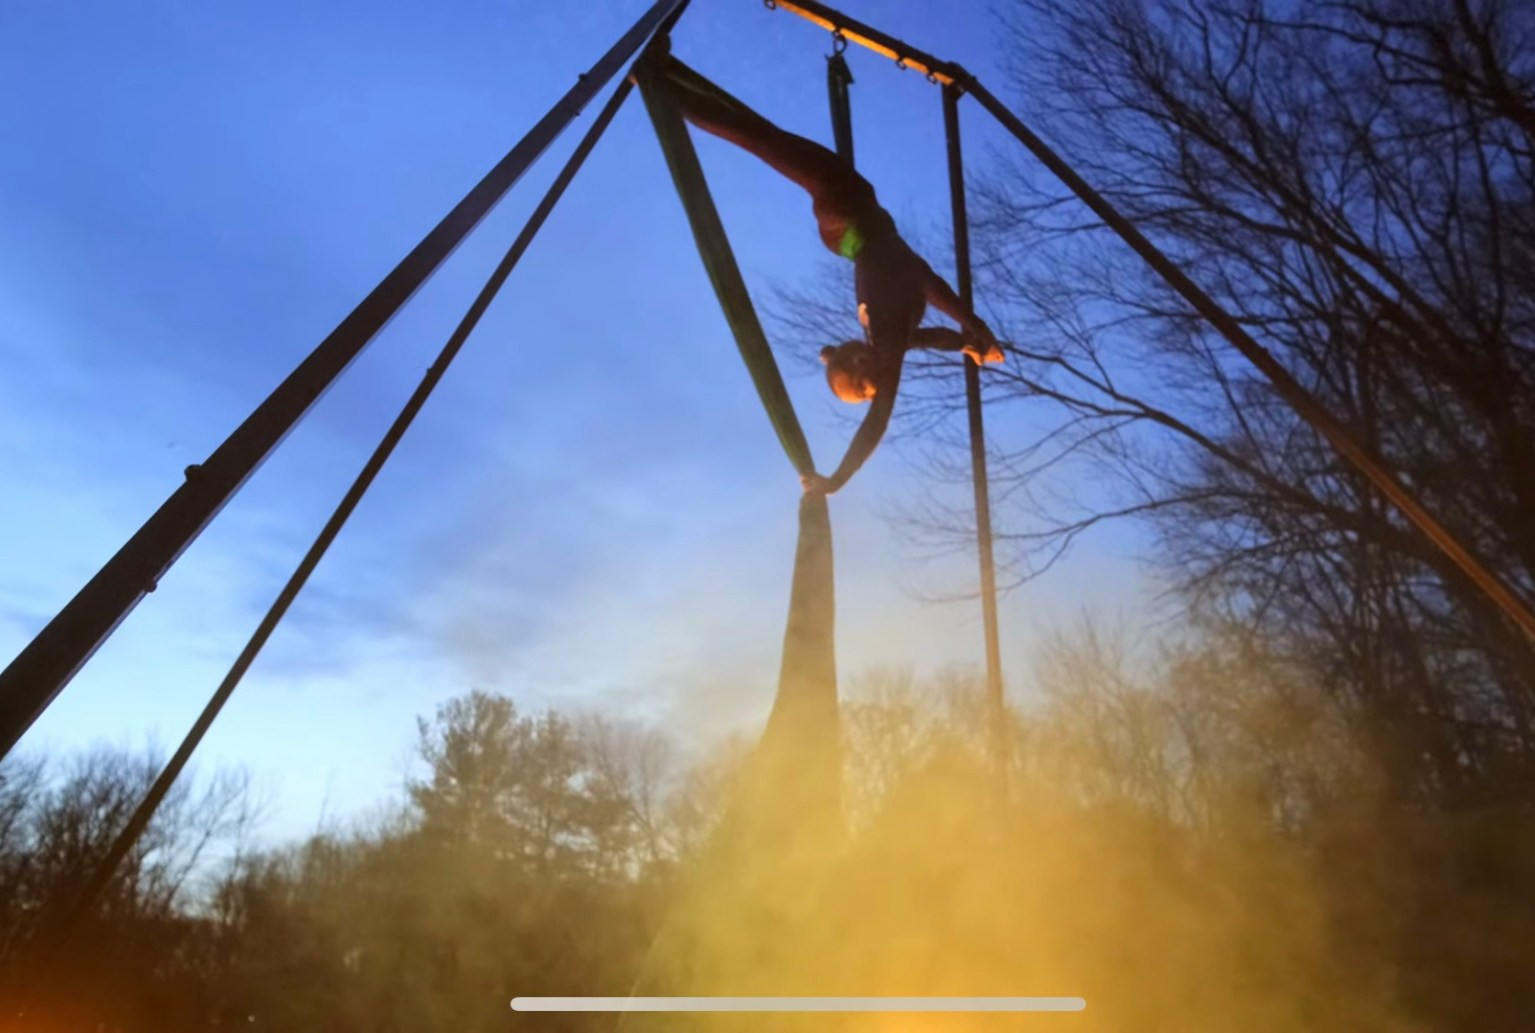 Aerialist performs she splits upside down on an aerial fabric